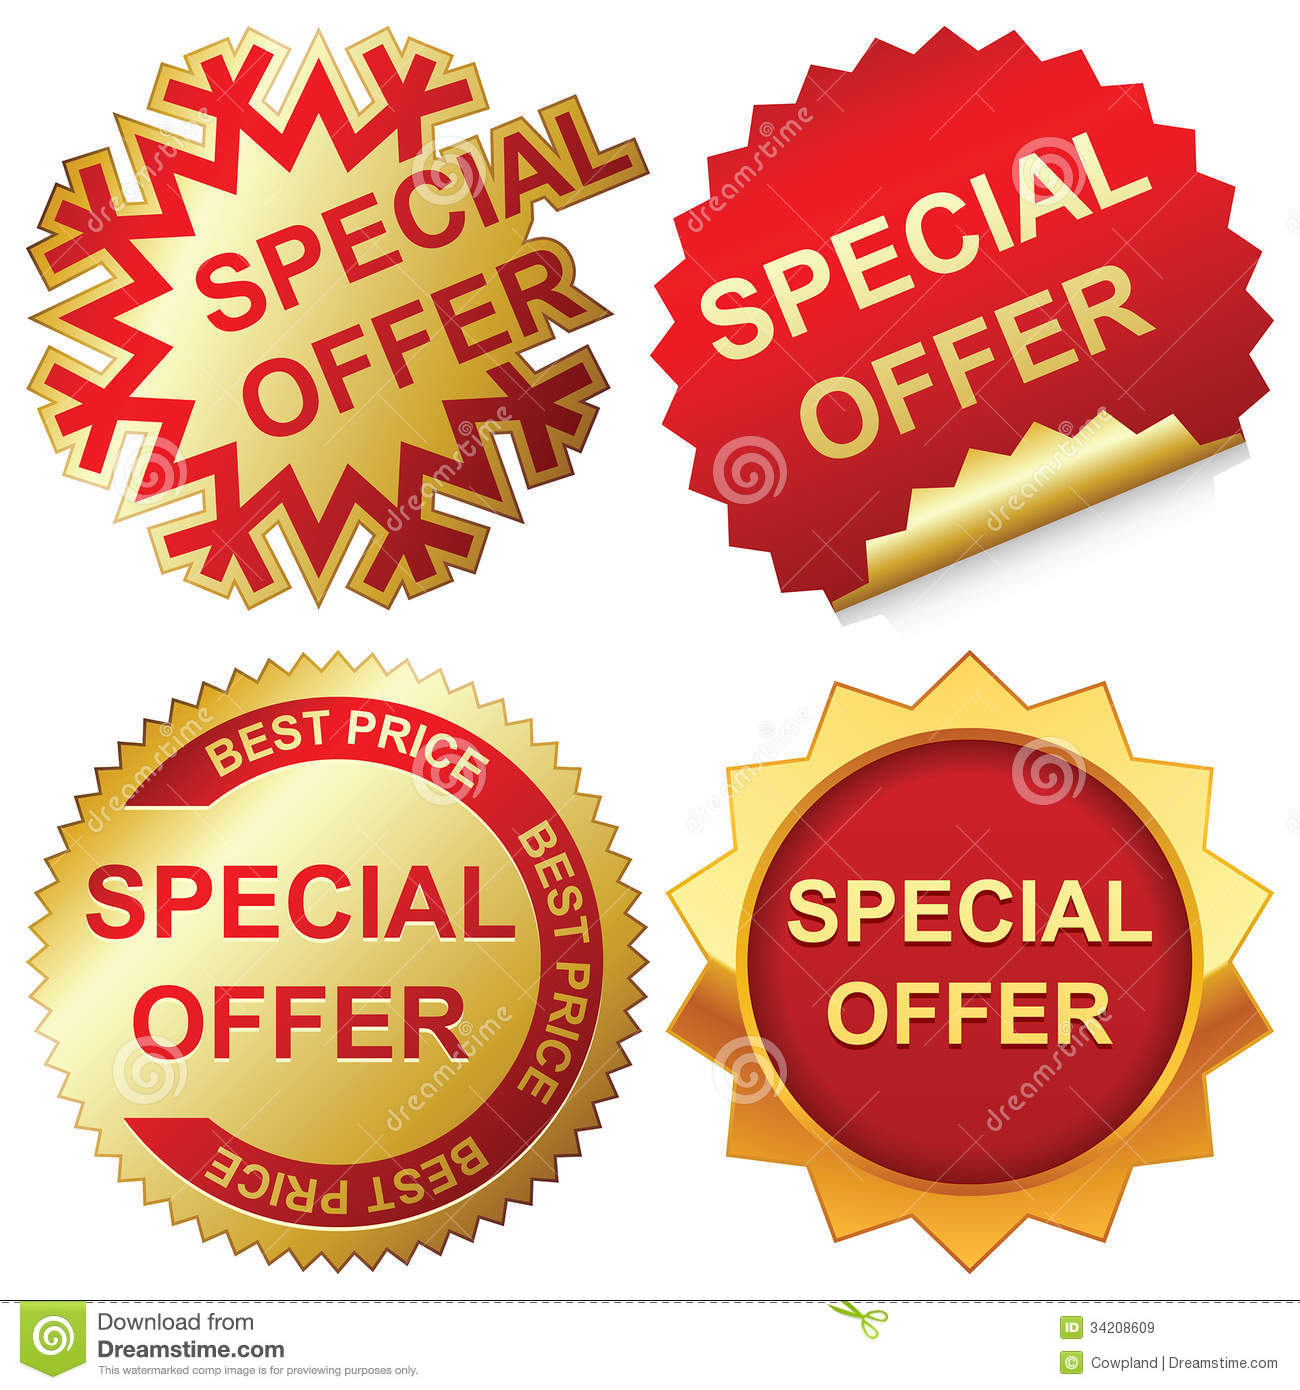 Special Offer Royalty Free Stock Images Image 34208609